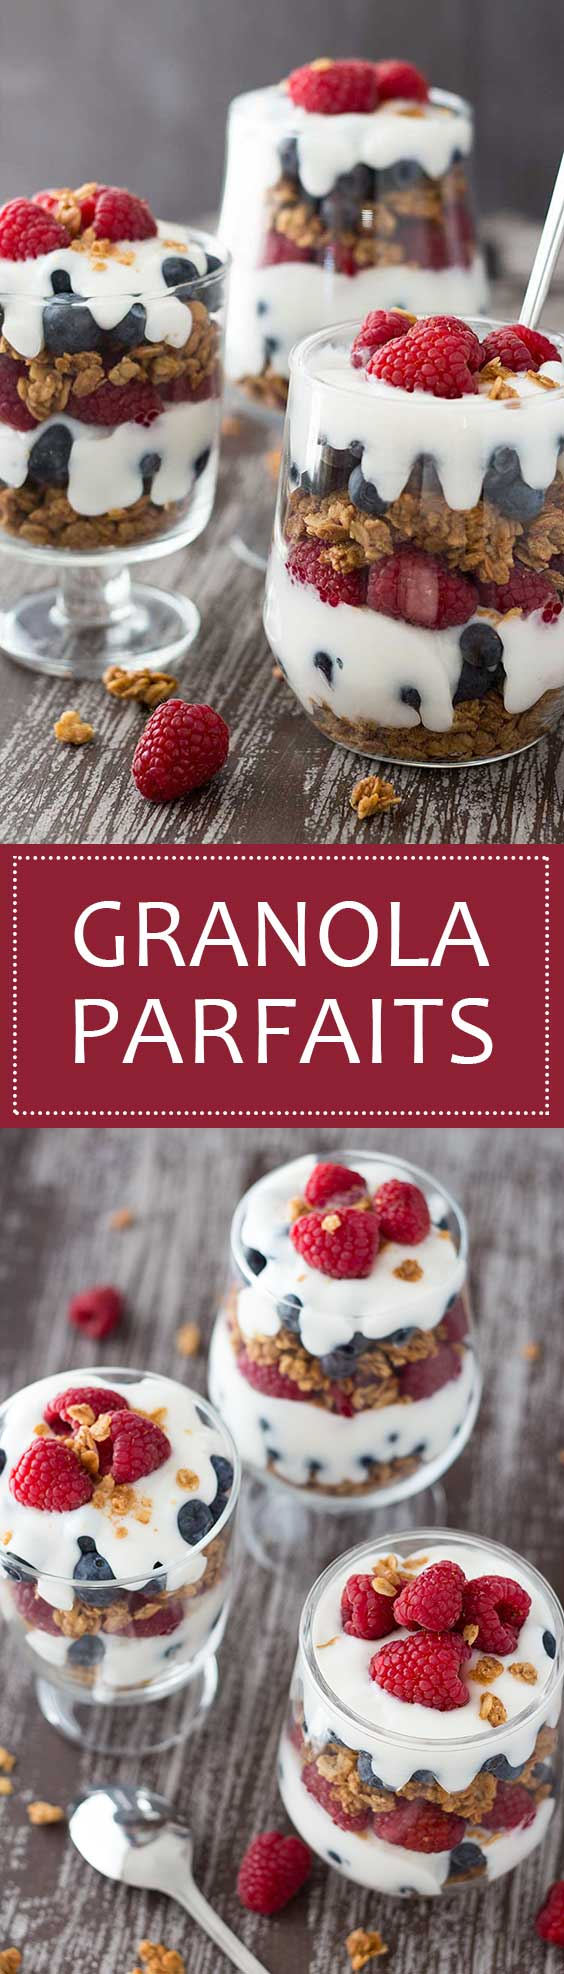 Easy Granola Parfaits Longpin